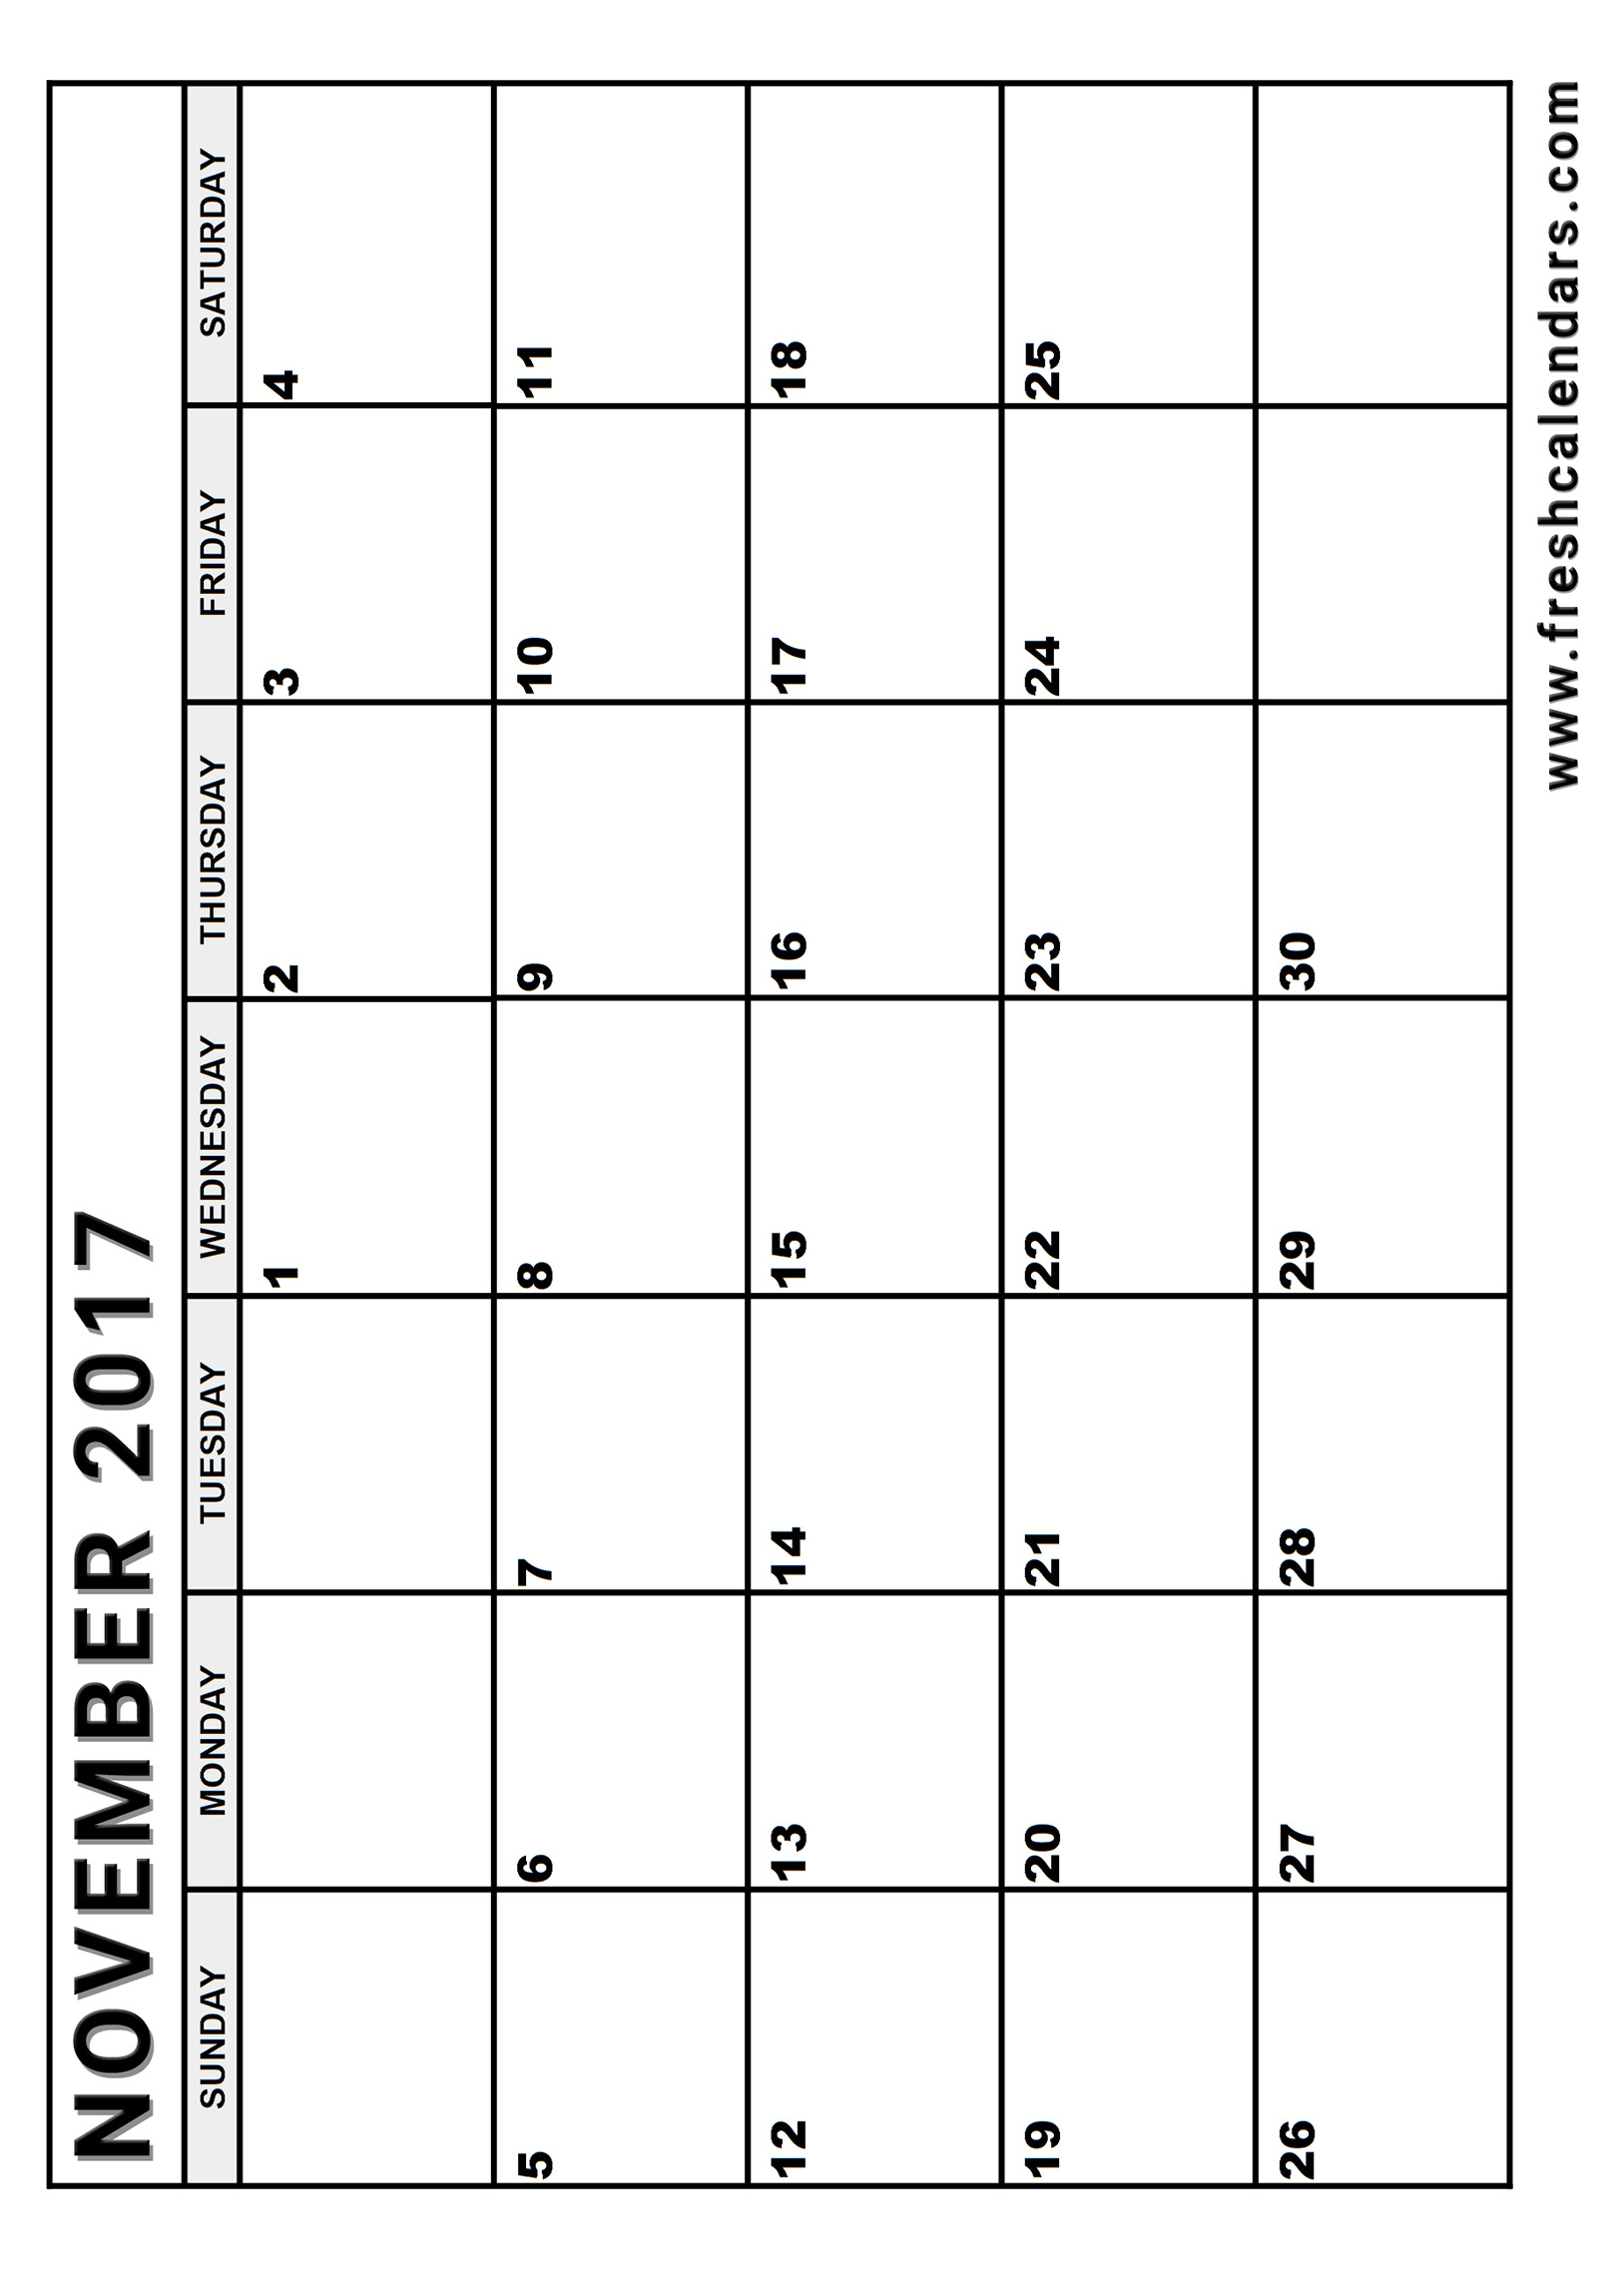 image regarding Vertical Calendar Printable titled November 2017 Calendar Printable Templates